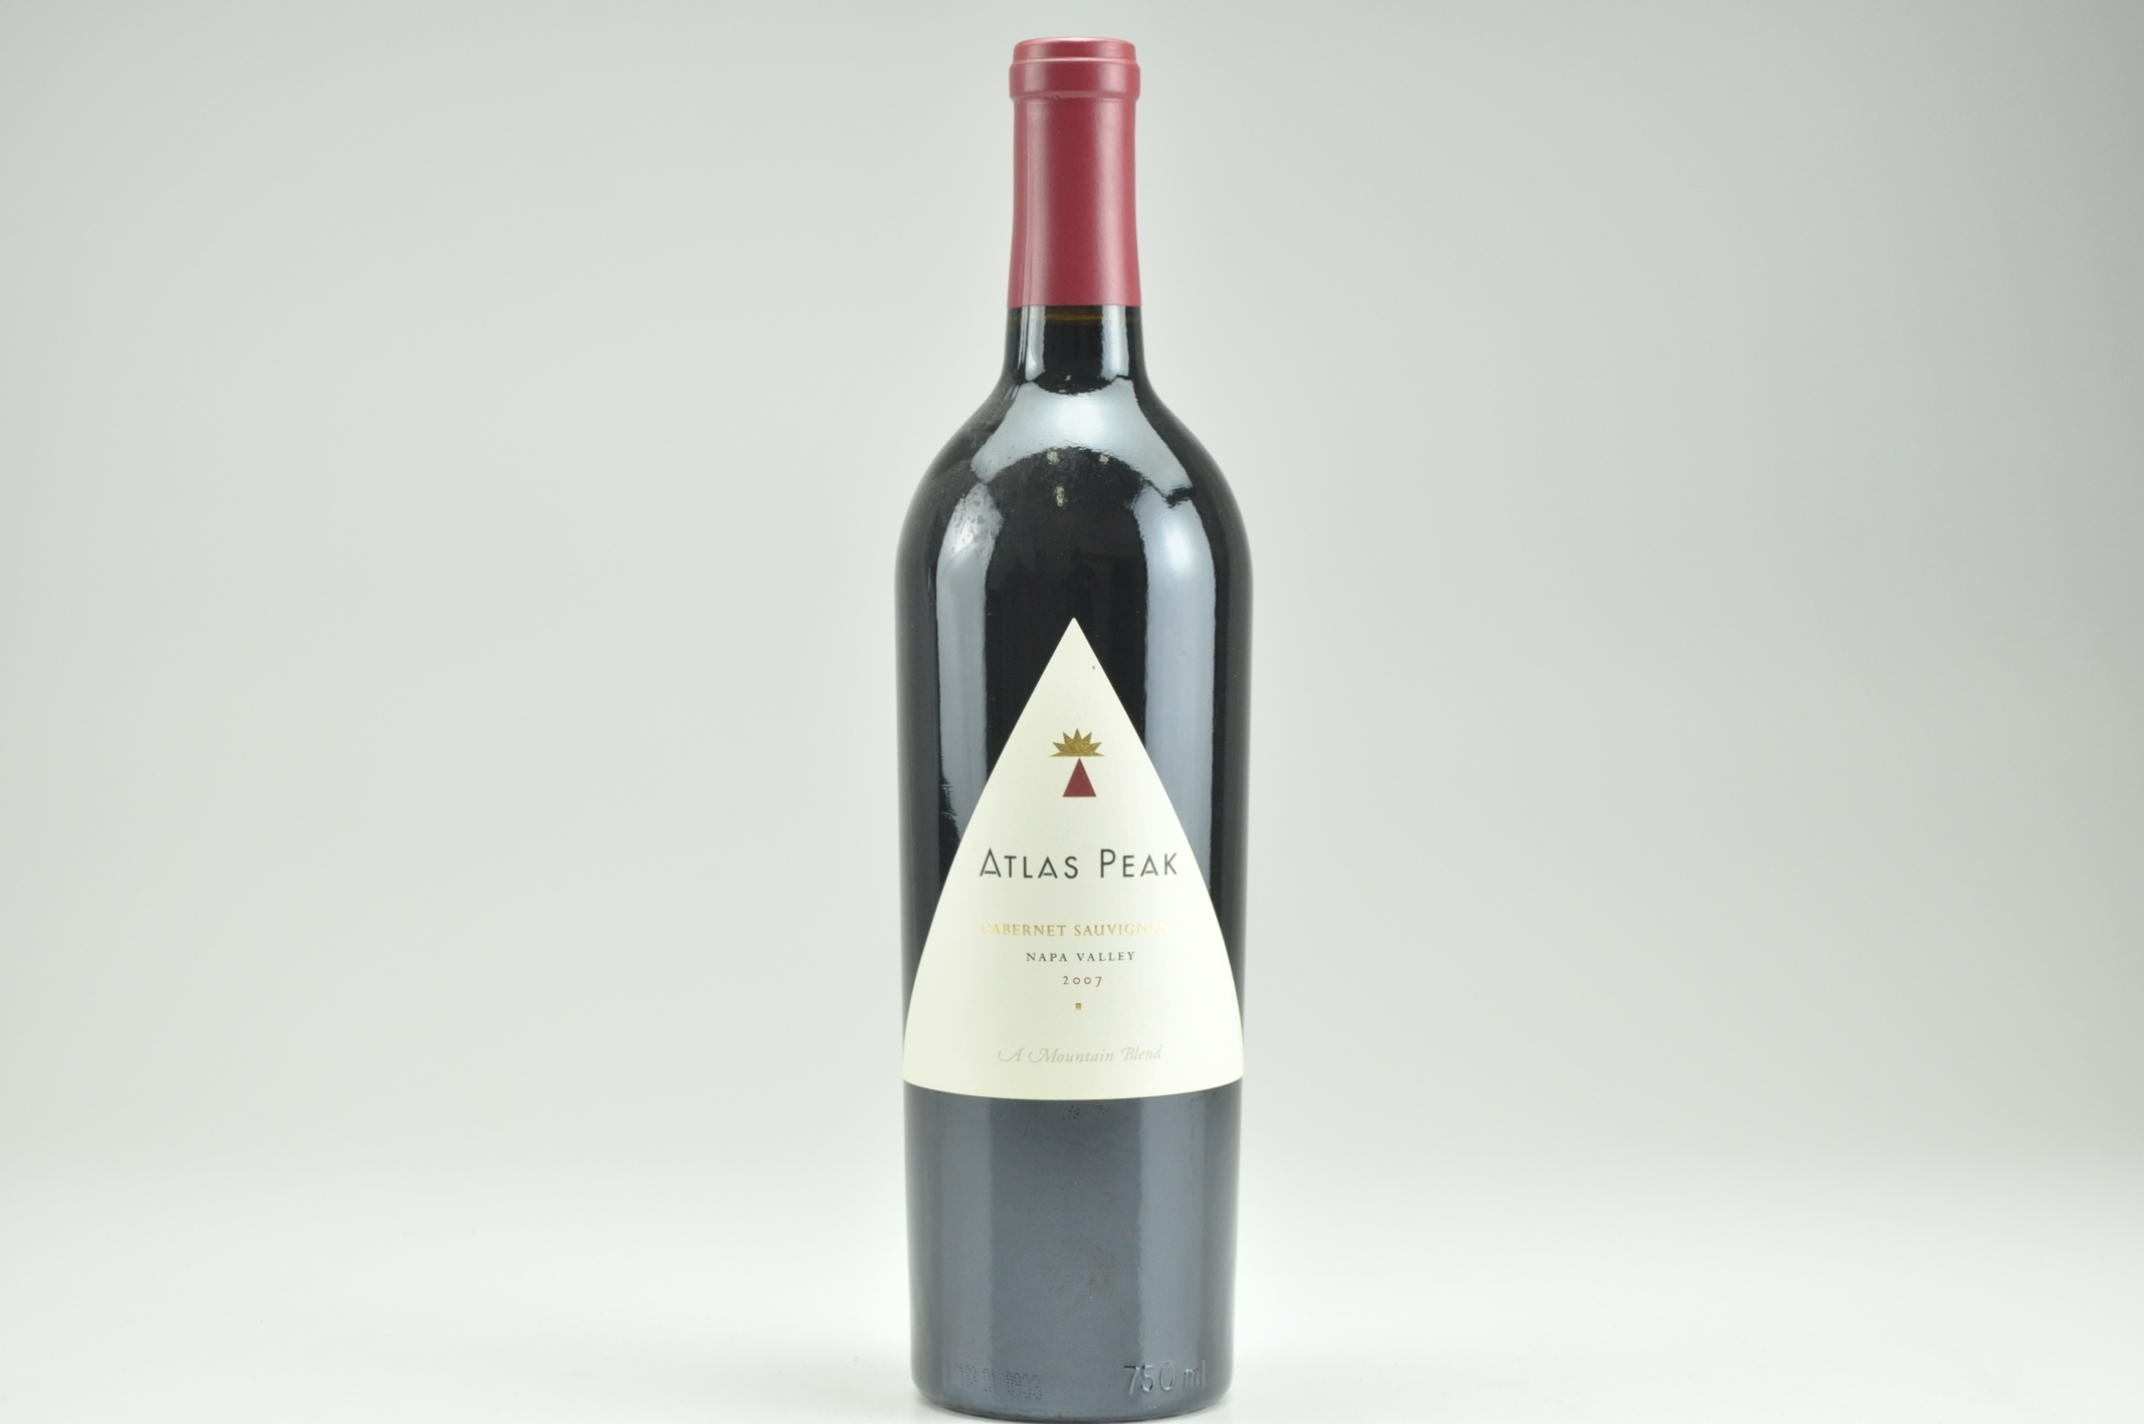 2007 Atlas Peak Cabernet Sauvignon, Napa Valley